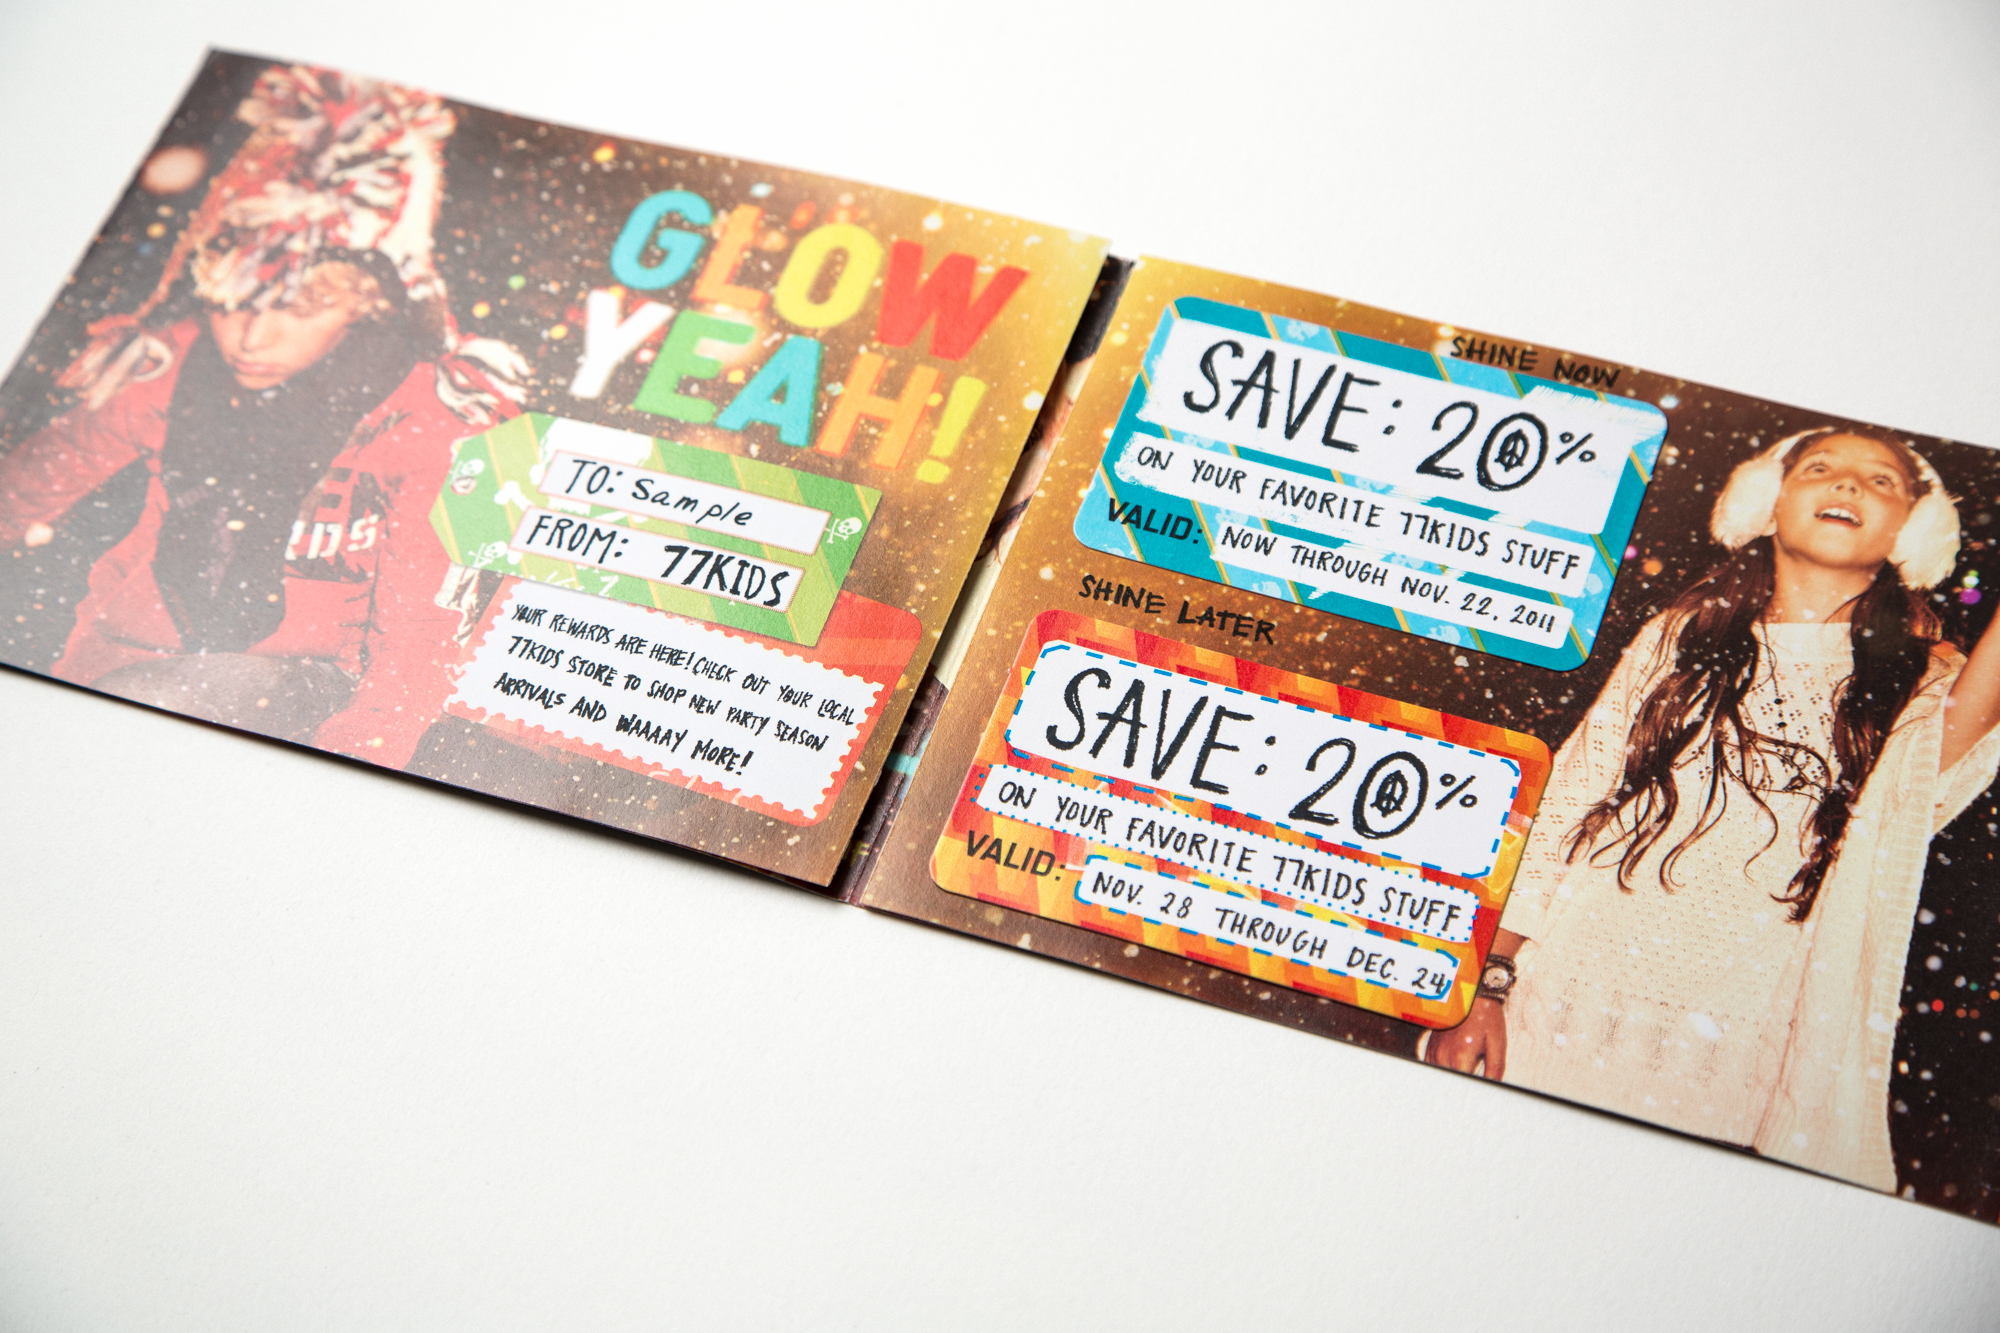 Holiday '11 Direct Mail